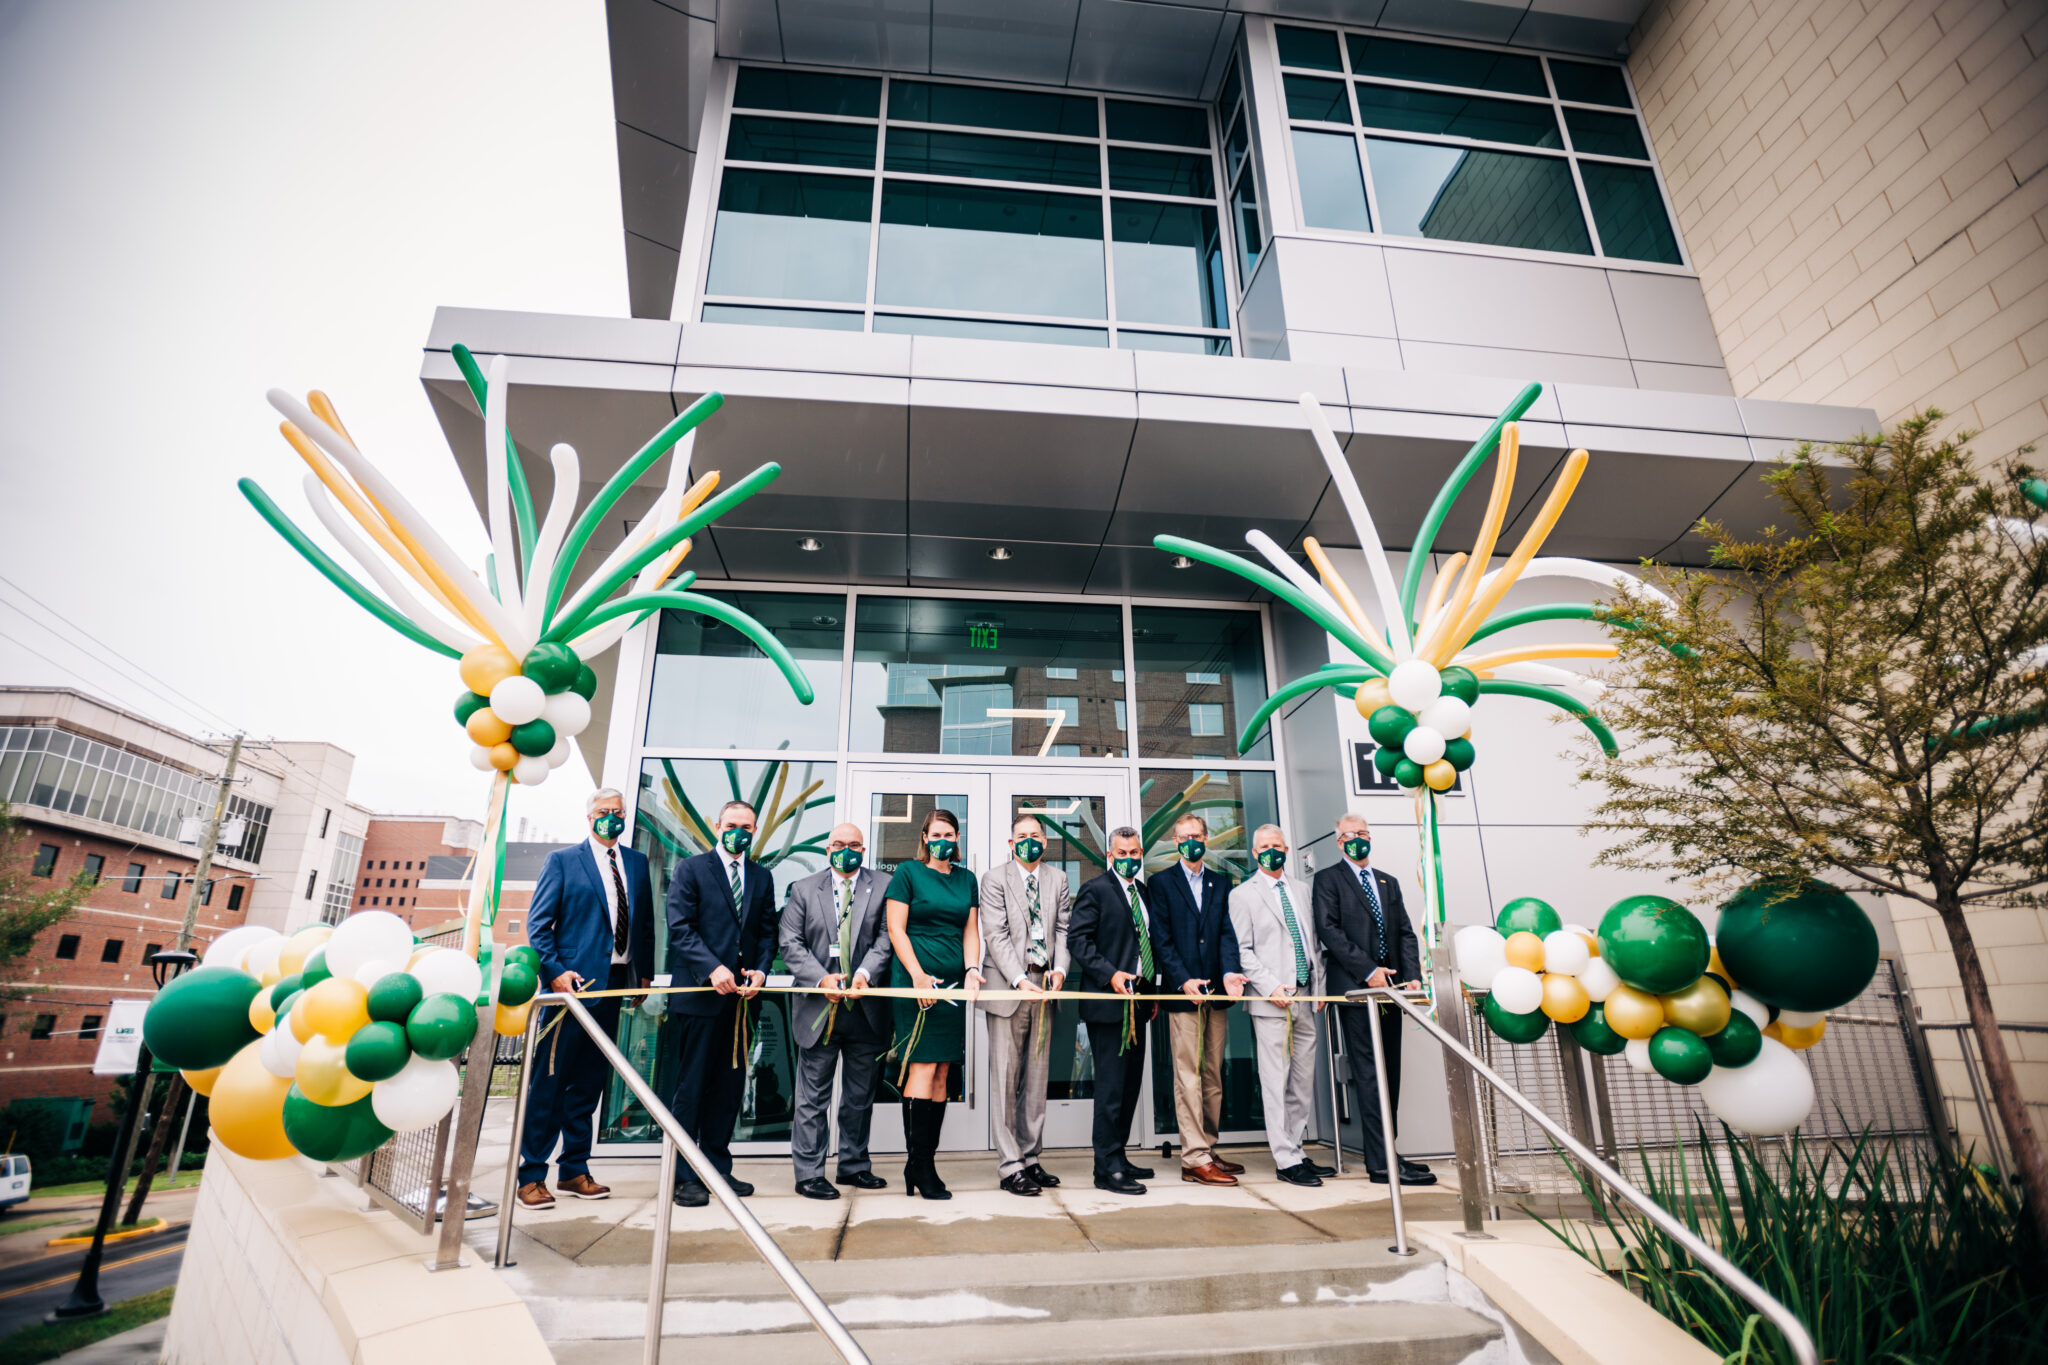 Sci-Fi IRL? Check out UAB's new Tech Innovation Center